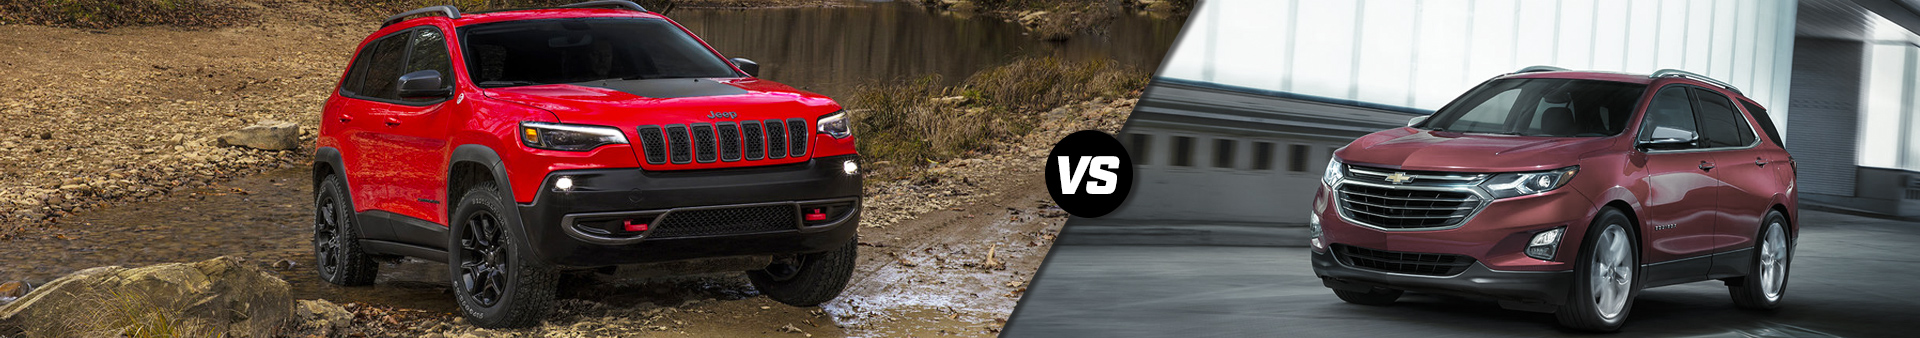 Jeep Cherokee vs. Chevy Equinox